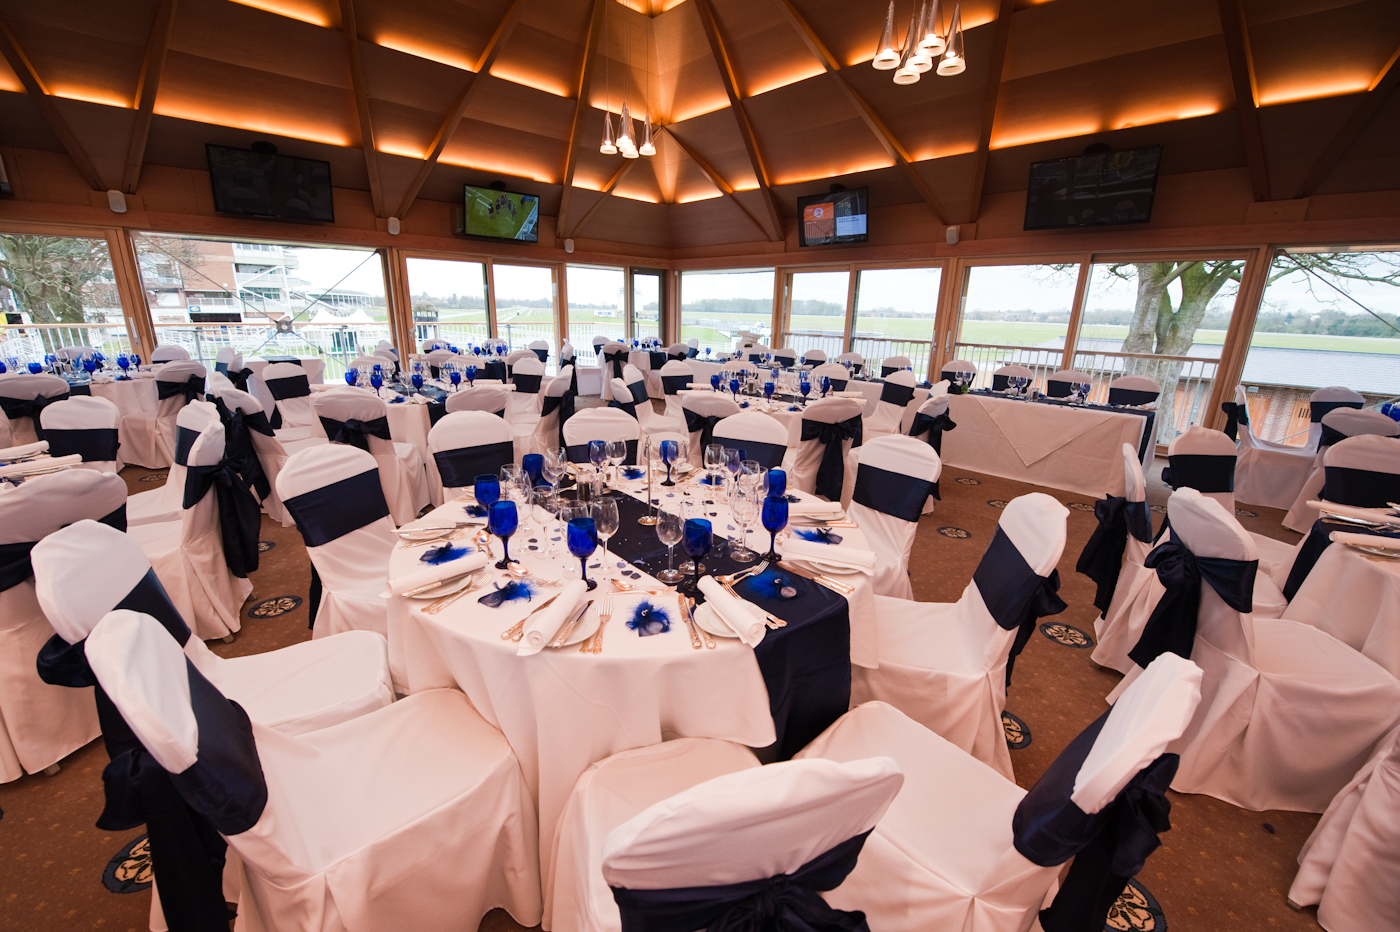 With Its Light Airy Almost Panoramic Views It Is An Ideal Location For A Very Special Wedding Day Experience Please Ask Details Of Our Parade Ring